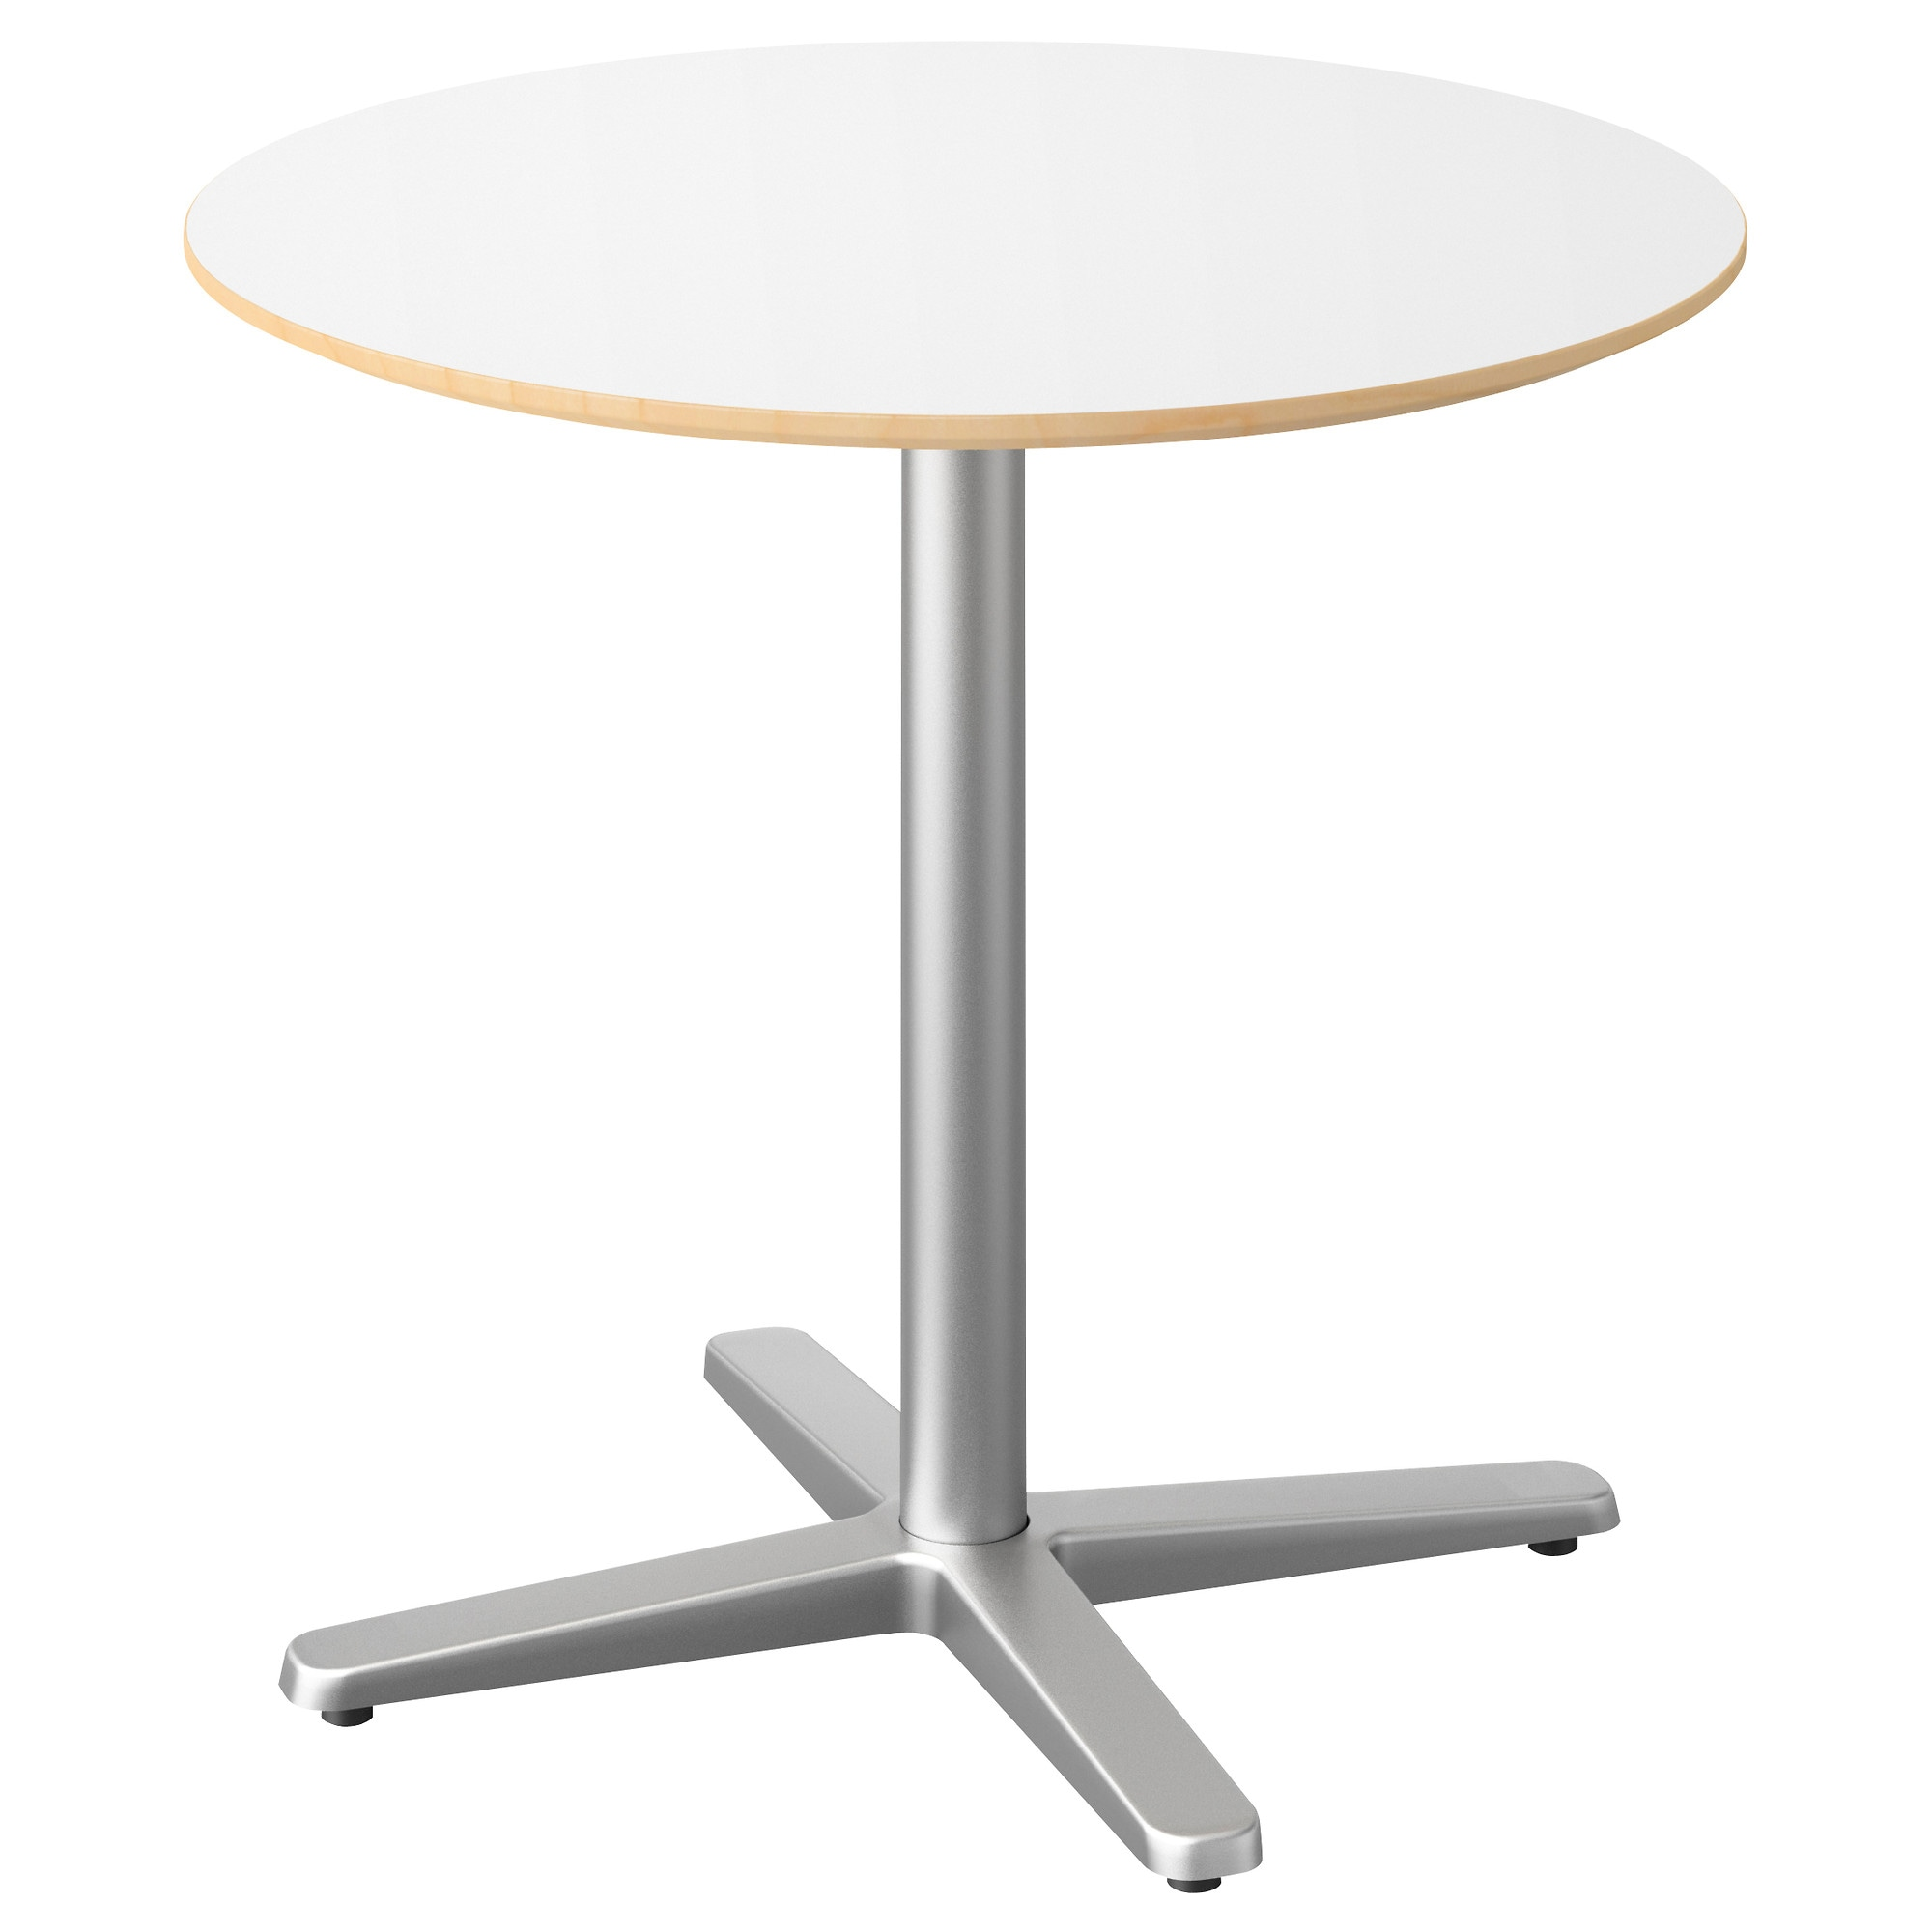 Table ronde haute ikea large choix table ronde haute ikea for Table haute ronde